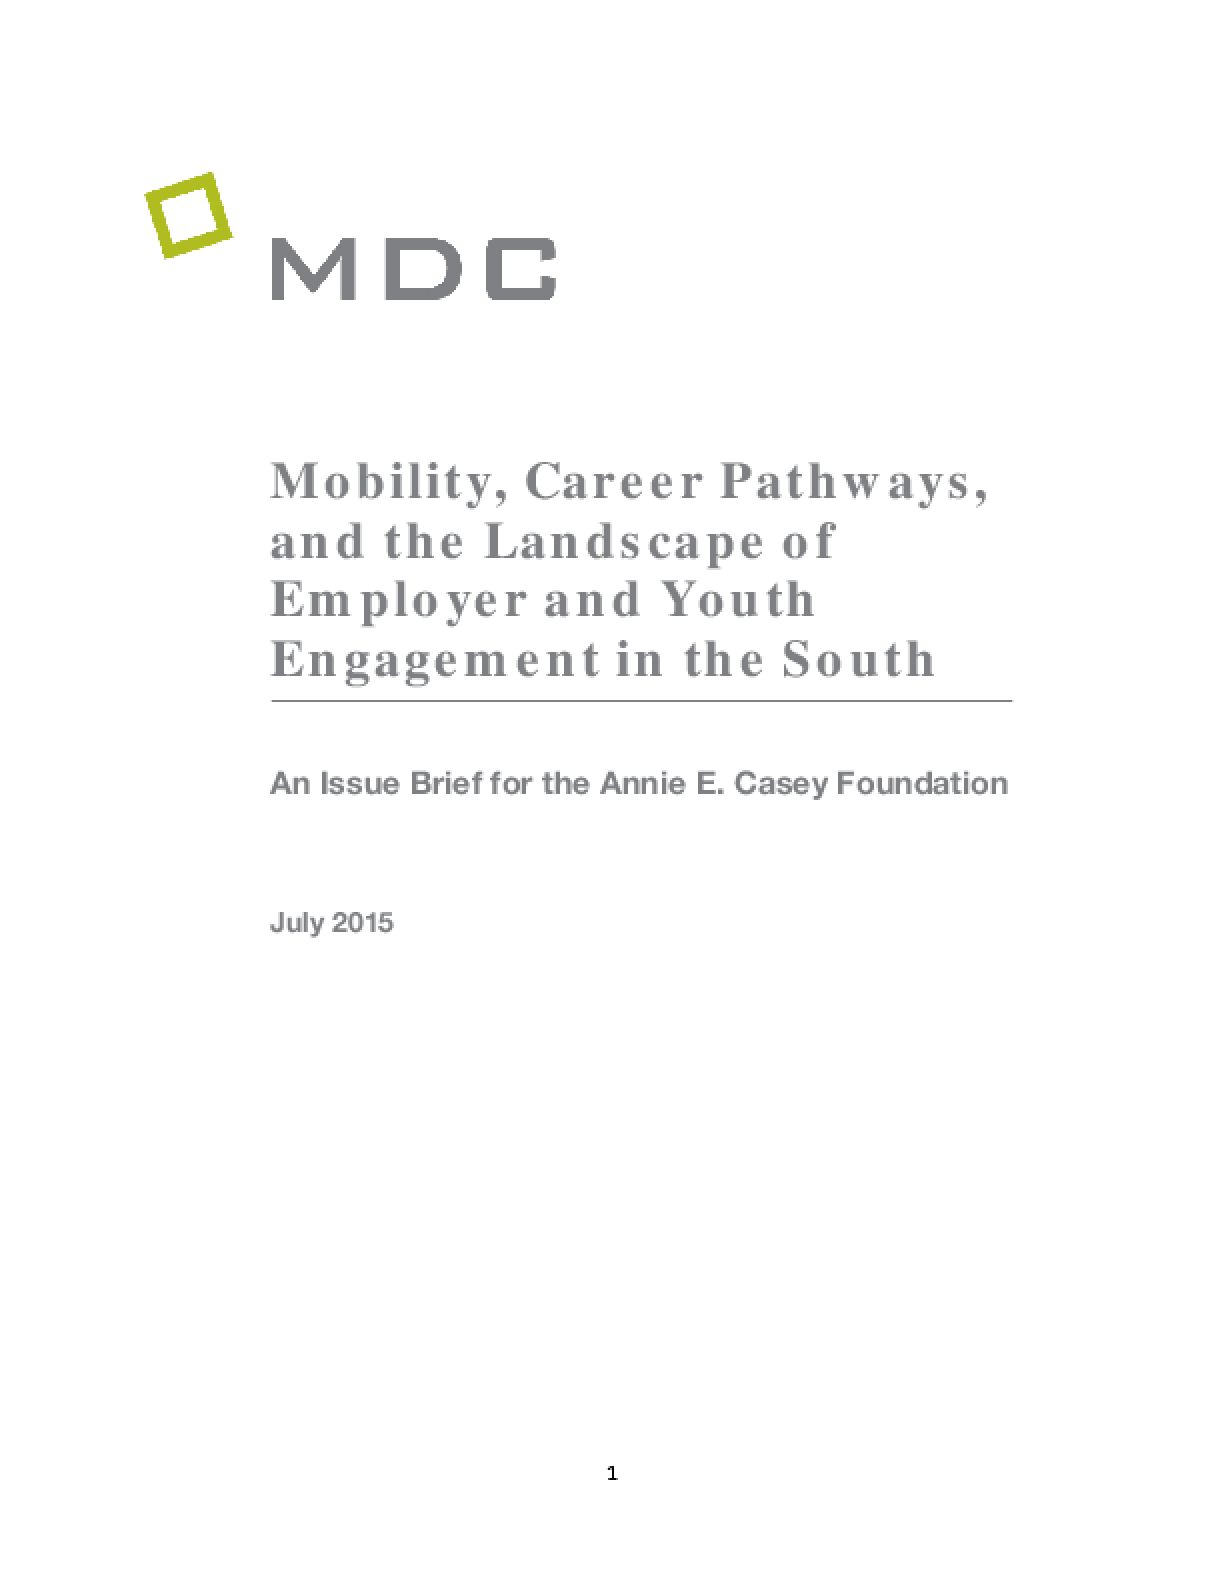 Mobility, Career Pathways, and the Landscape of Employer and Youth Engagement in the South